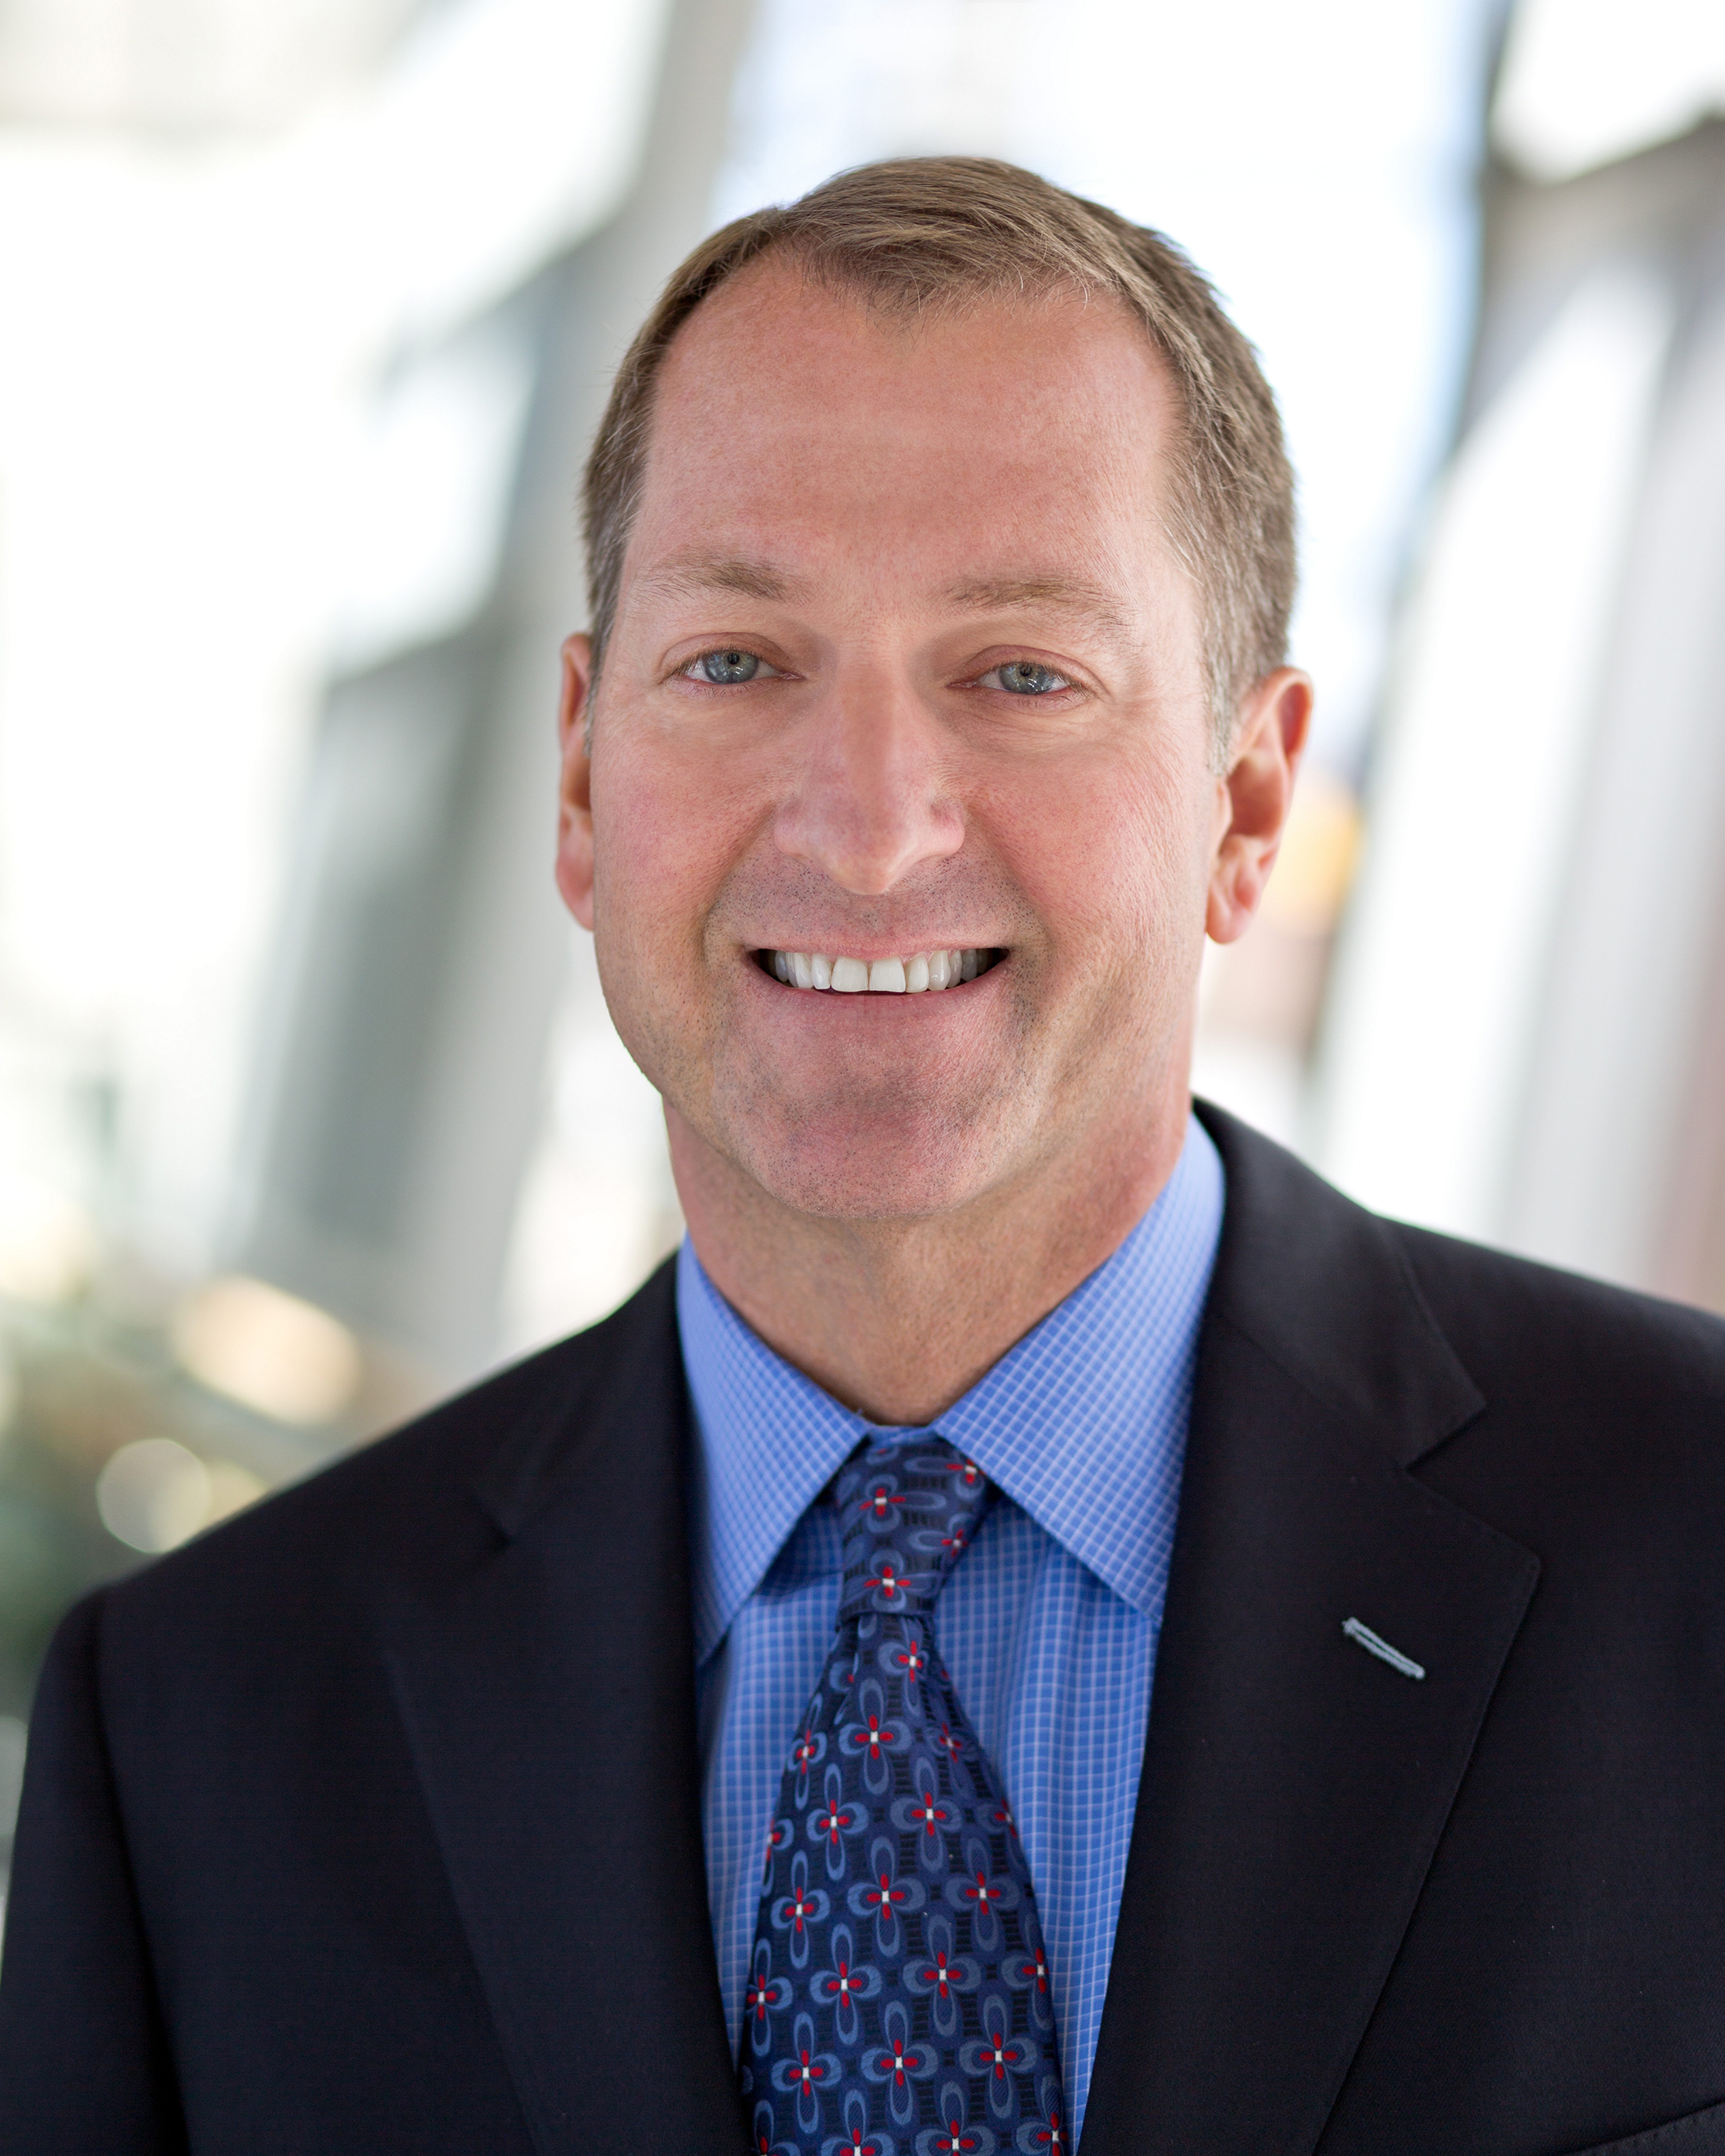 Christopher H. Koch, CEO of New Era Cap Co., was  named the 2013 Buffalo Niagara Executive of the Year by the University at Buffalo School of Management.